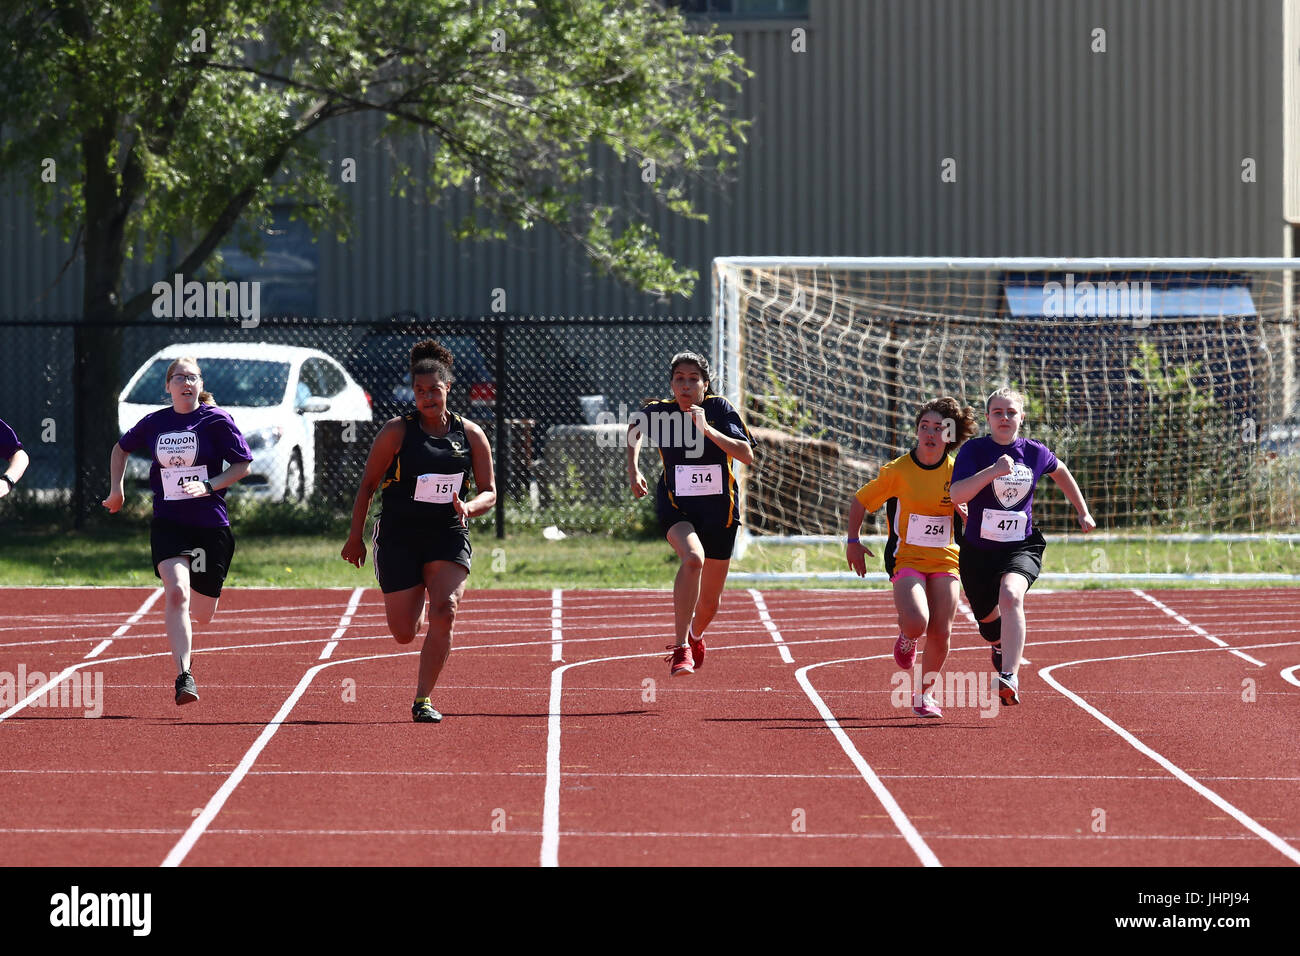 Team London Special Olympics in Brantford Ontario 2017 - Stock Image